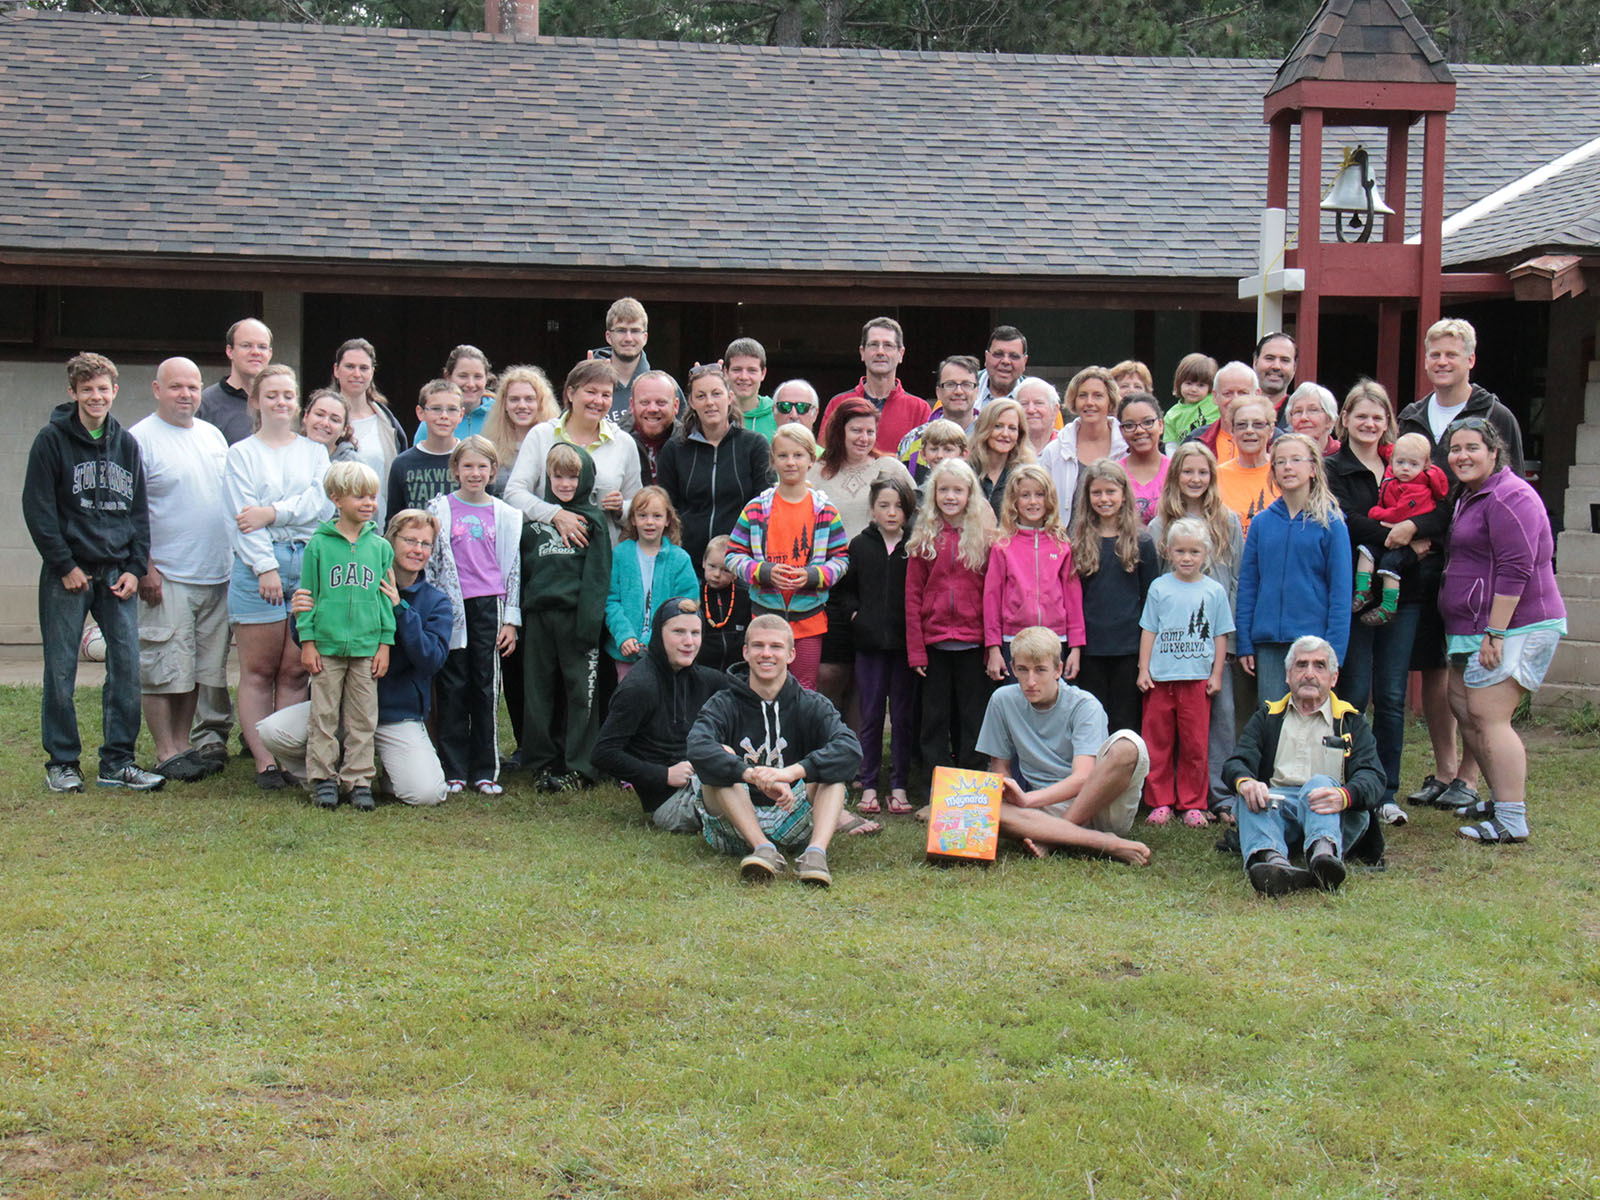 2014 MLC At Camp Lutherlyn, Group